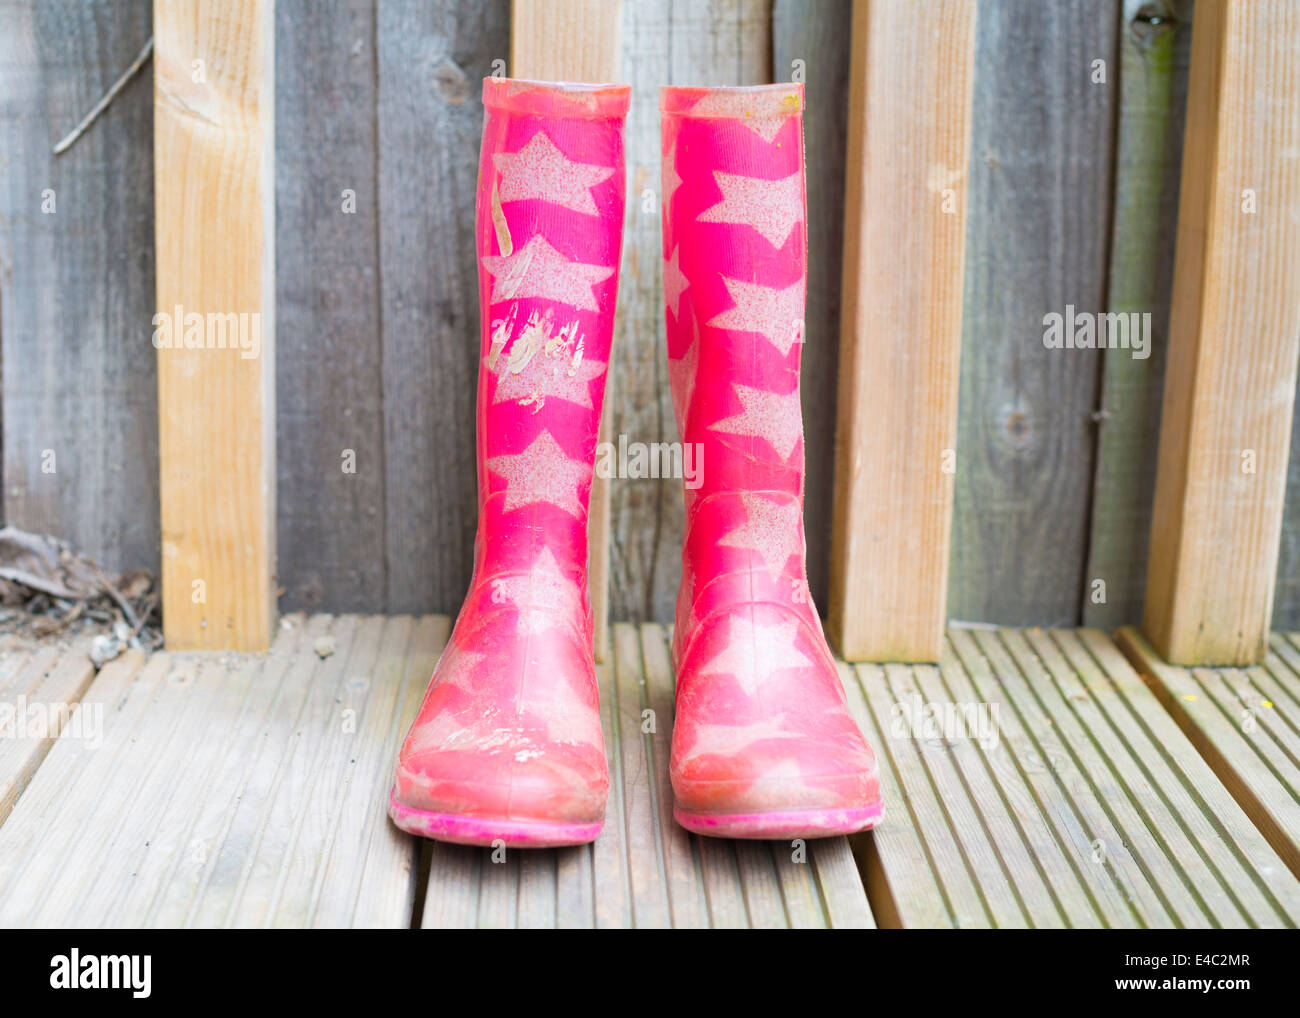 Boots Bilder Dirty Boots Rubber Dirty Bilder Rubber Stockfotosamp; Rubber Stockfotosamp; Stockfotosamp; Dirty Boots QdhrsBtxC